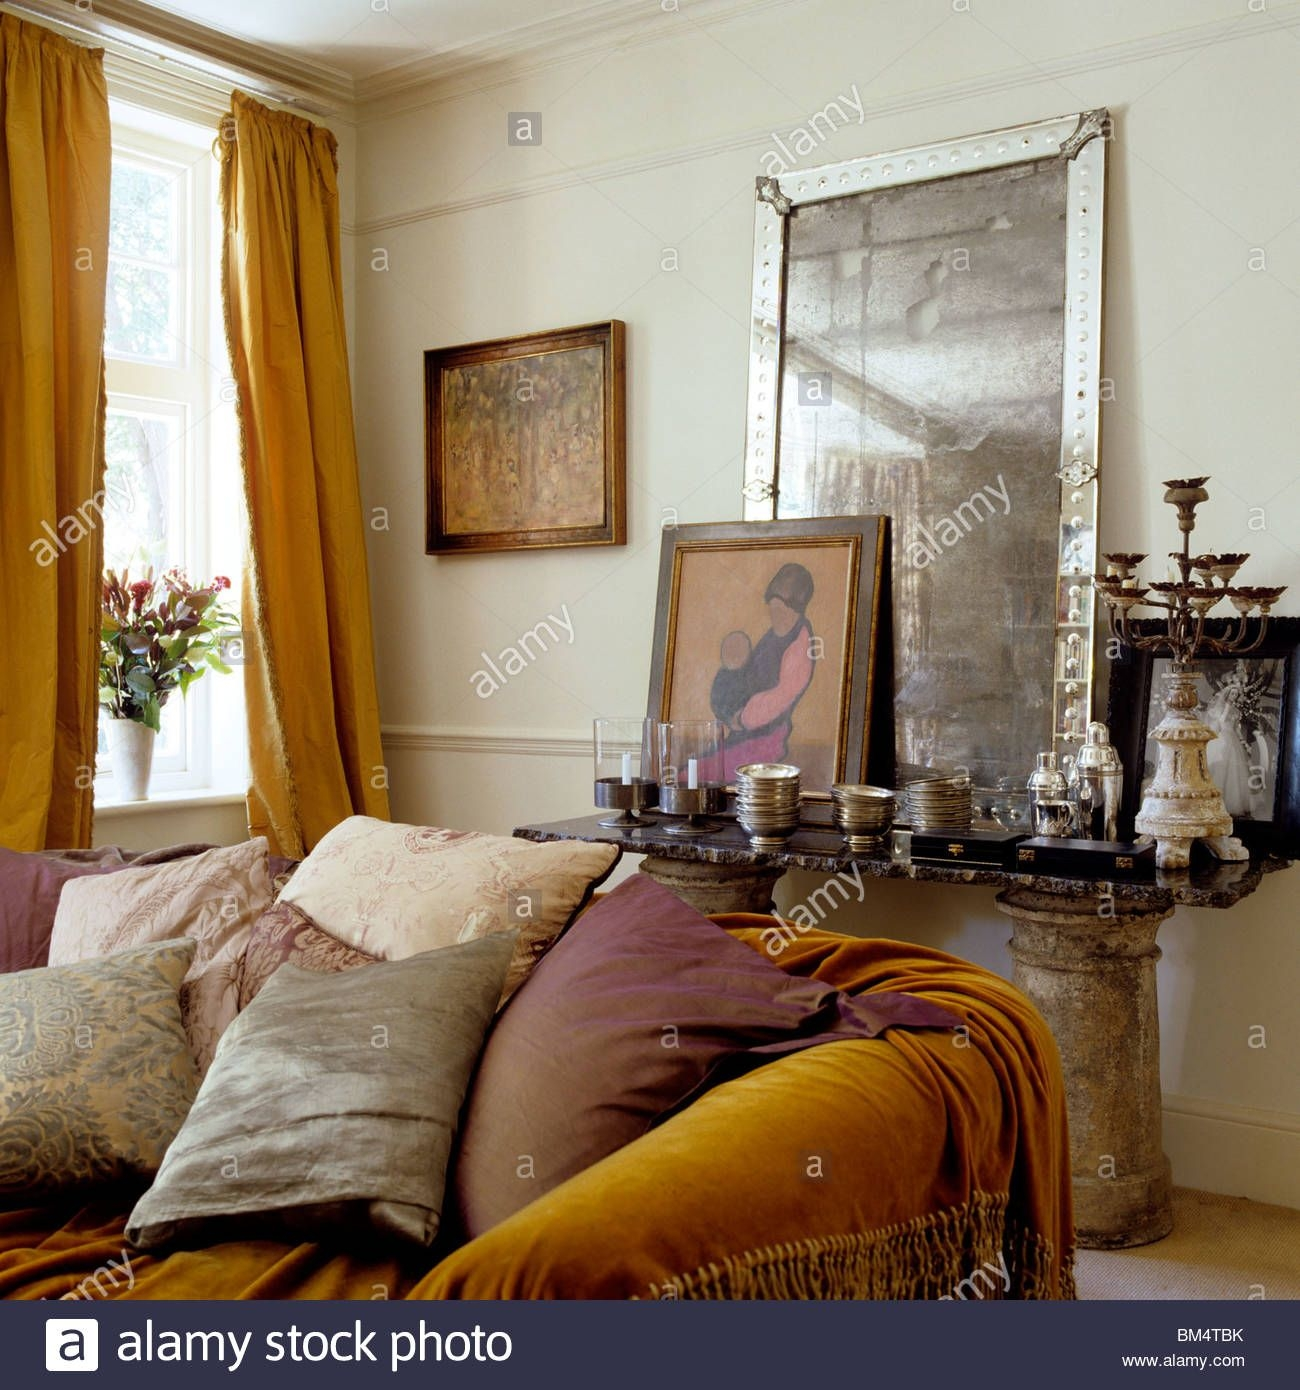 Furnished Sofa In Living Room With Antique Mirror Display Stock Photo 29610439  Alamy